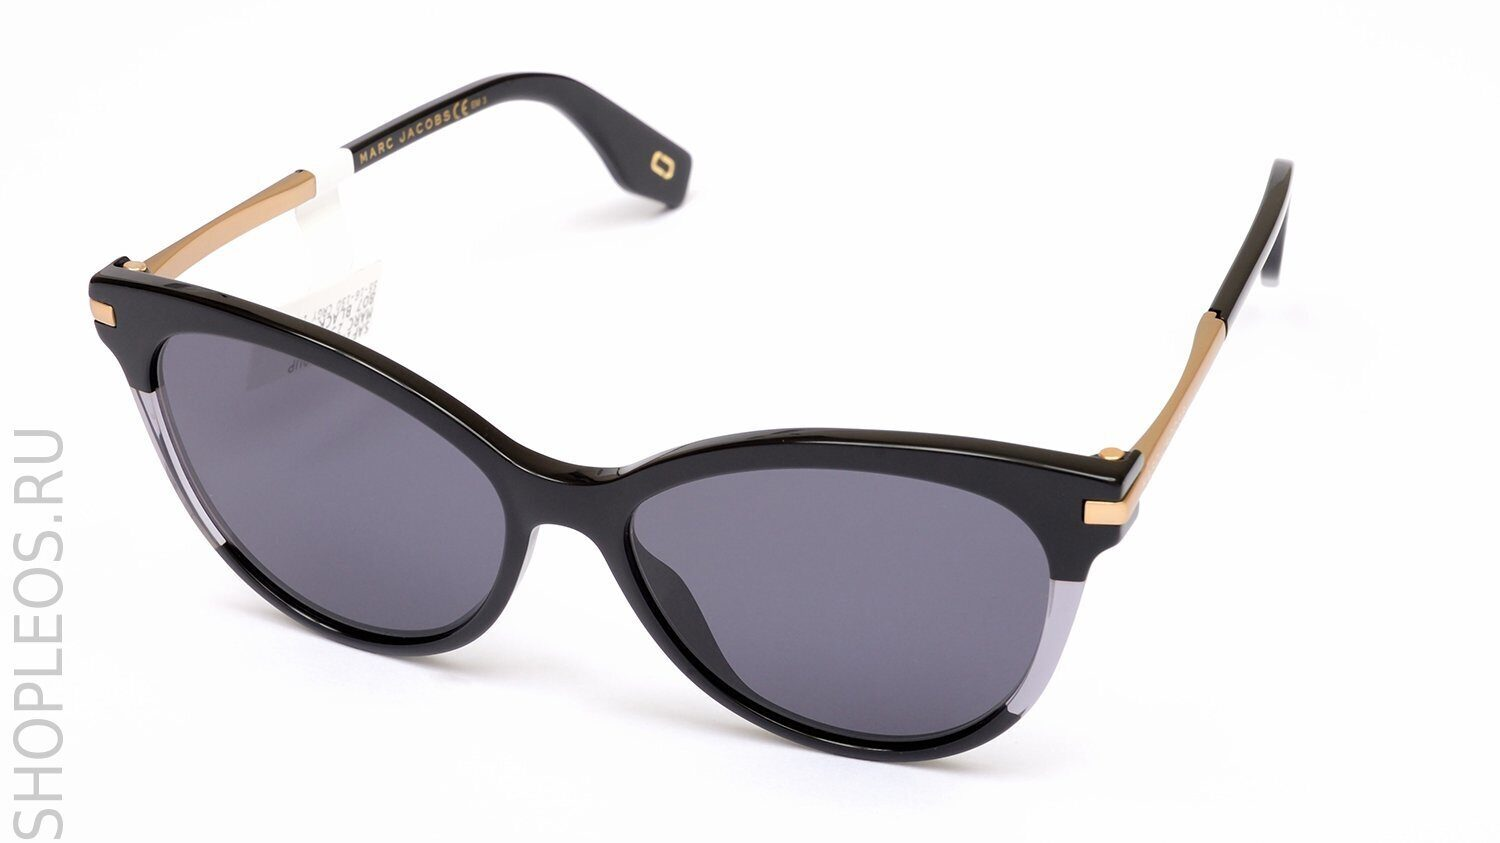 MARC JACOBS WOMAN MARC 295/S 807